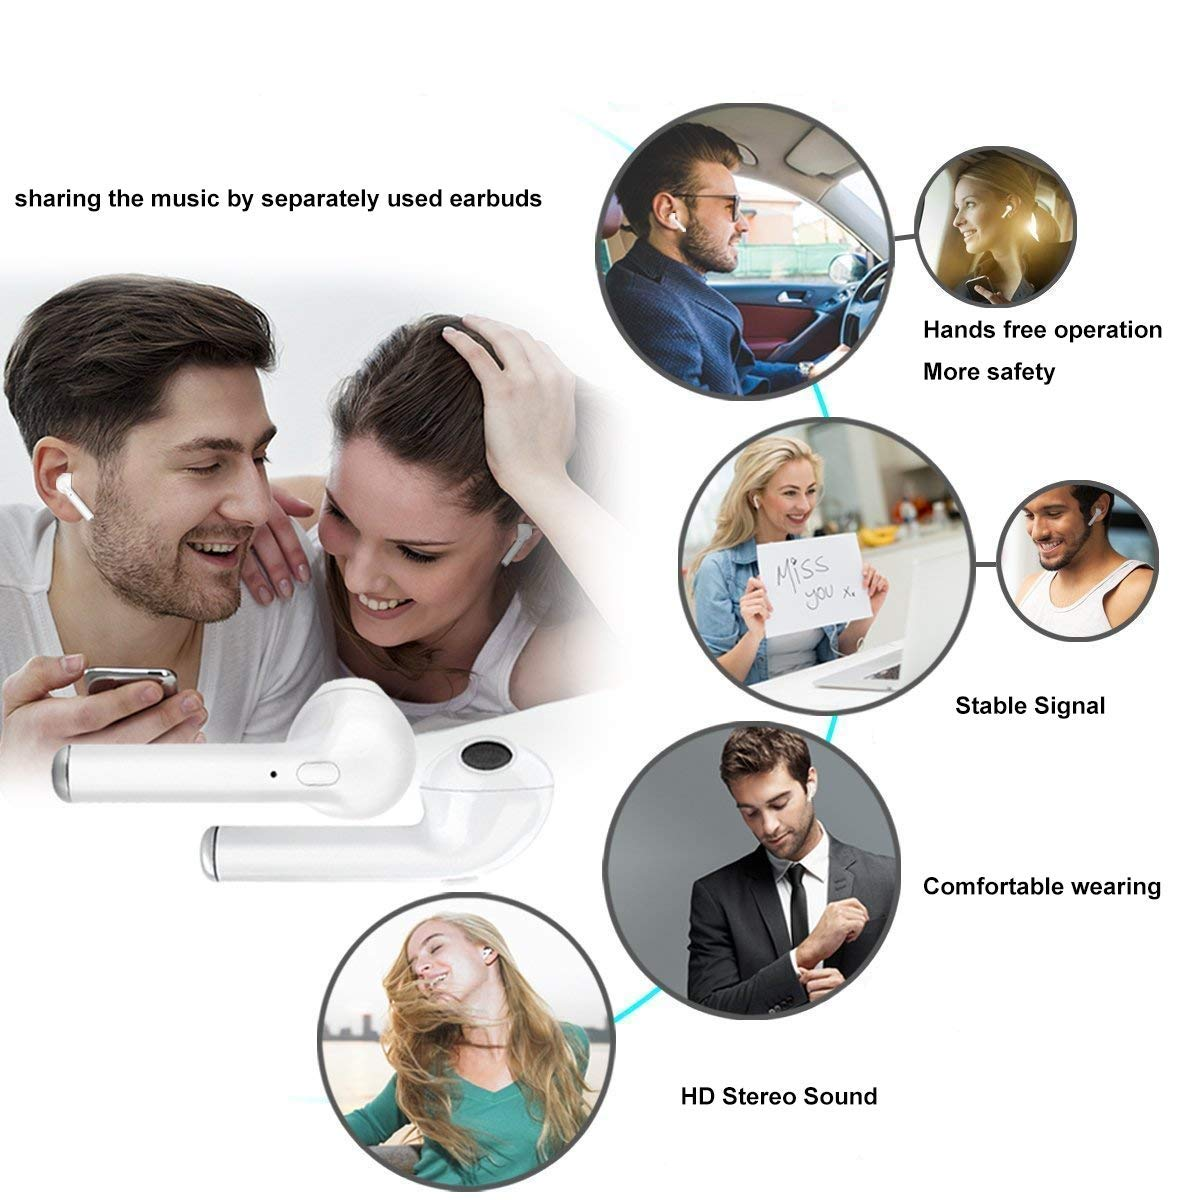 True Wireless Bluetooth Headphones,in-Ear Wireless Earbuds Touch Control TWS Bluetooth 5.0 Earphones with HD Microphone Sports Earbuds,Headphones Compatible with Apple Airpods Android iPhone Samsung